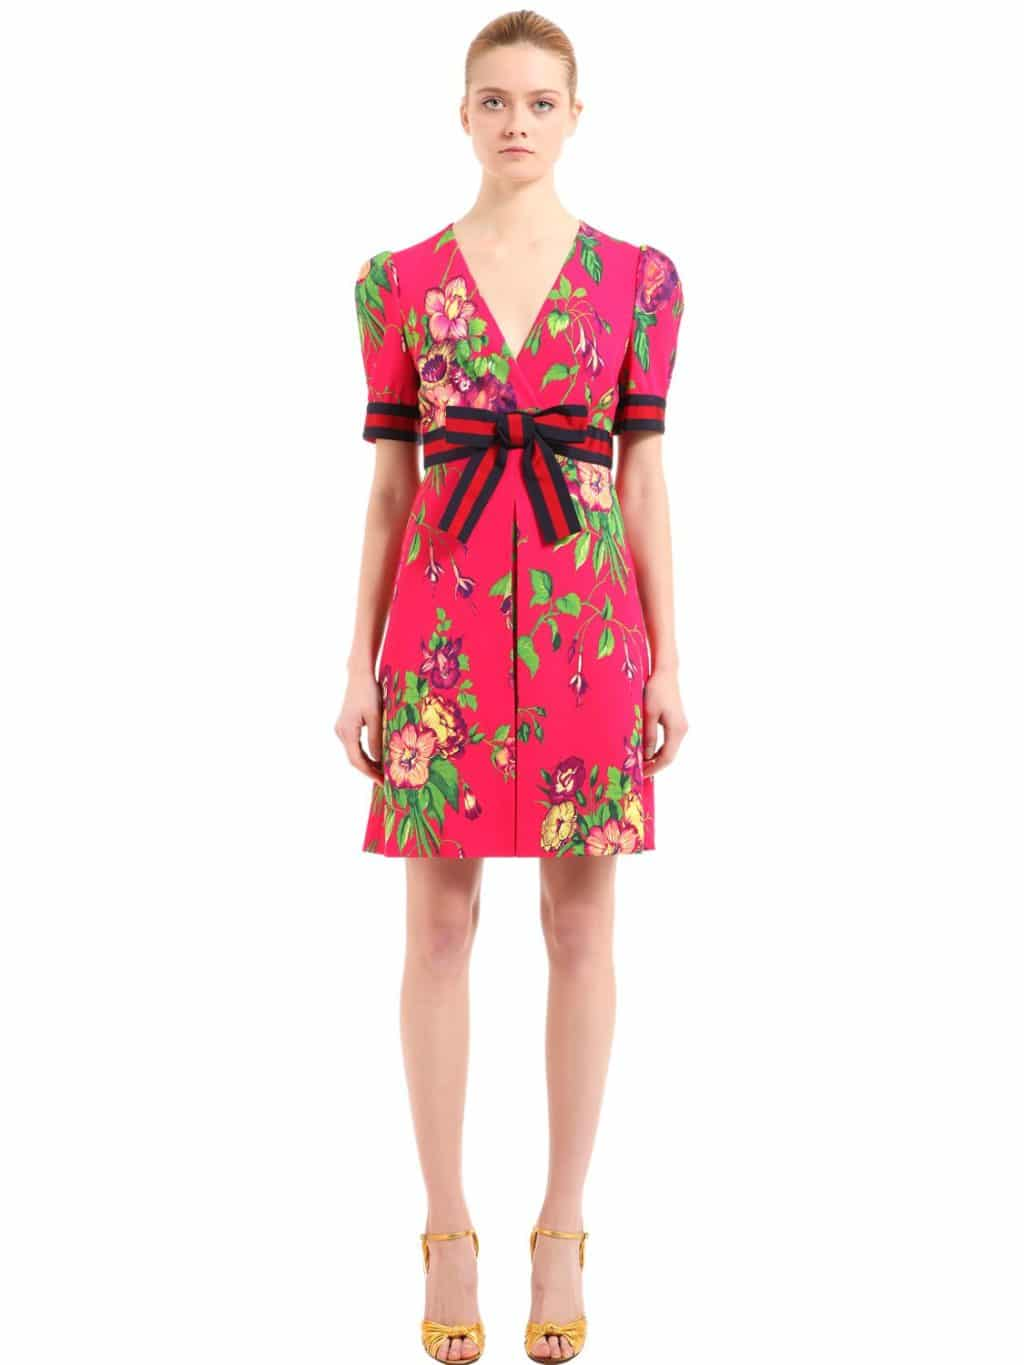 736d024eb GUCCI Stretch Jersey Fuchsia / Floral Printed Dress - We Select Dresses